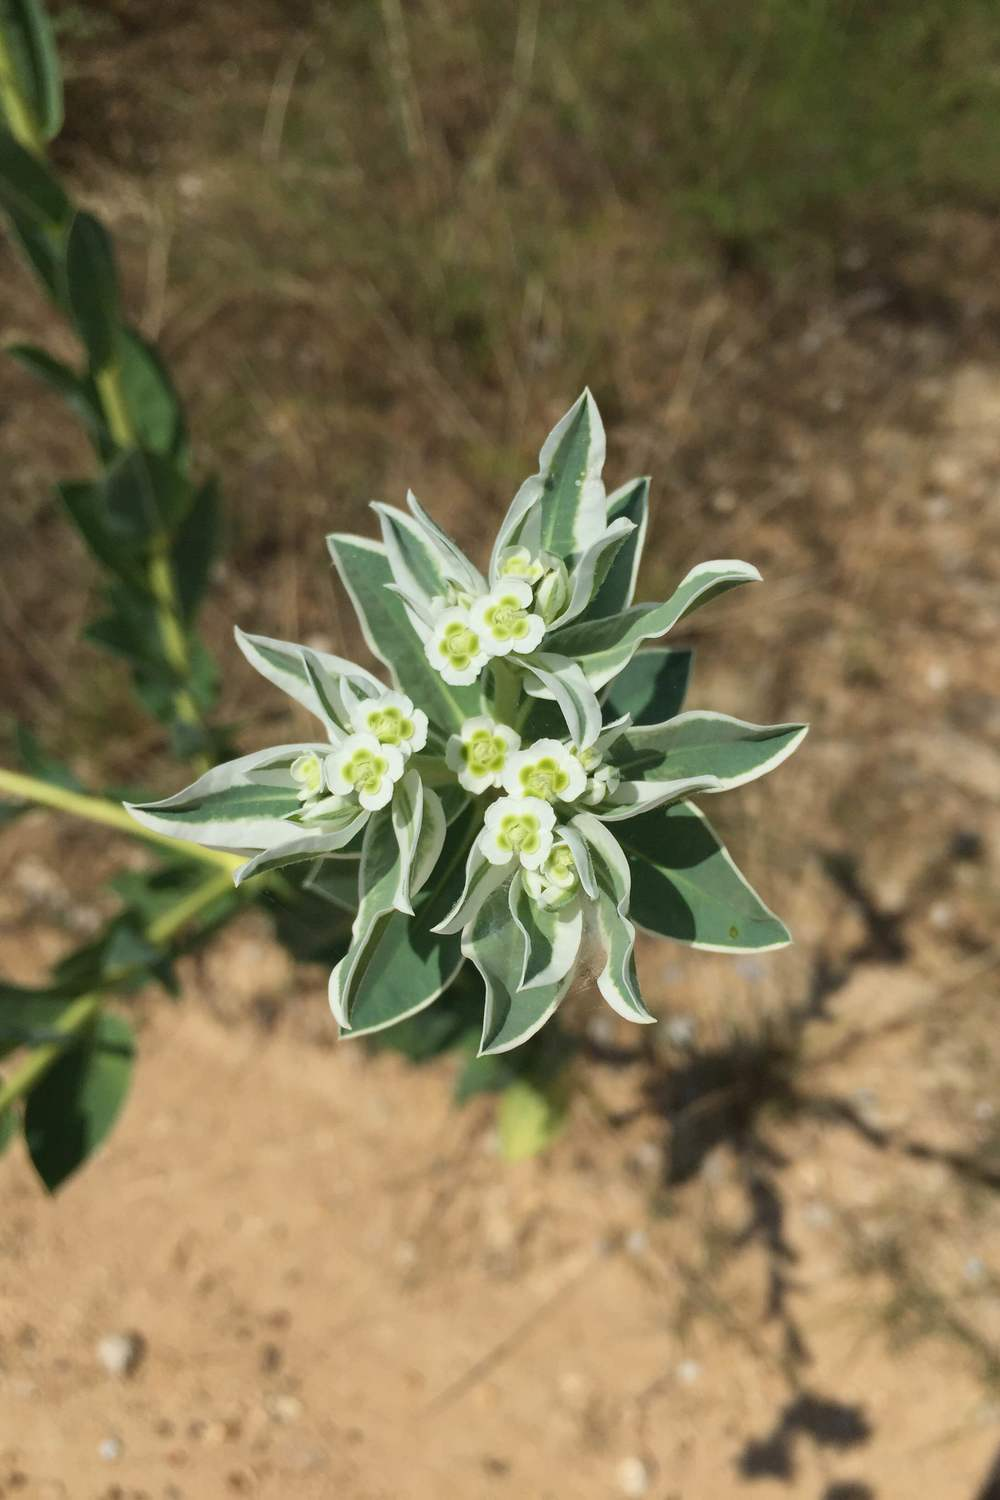 Euphorbia marginata, Snow on the Mountain